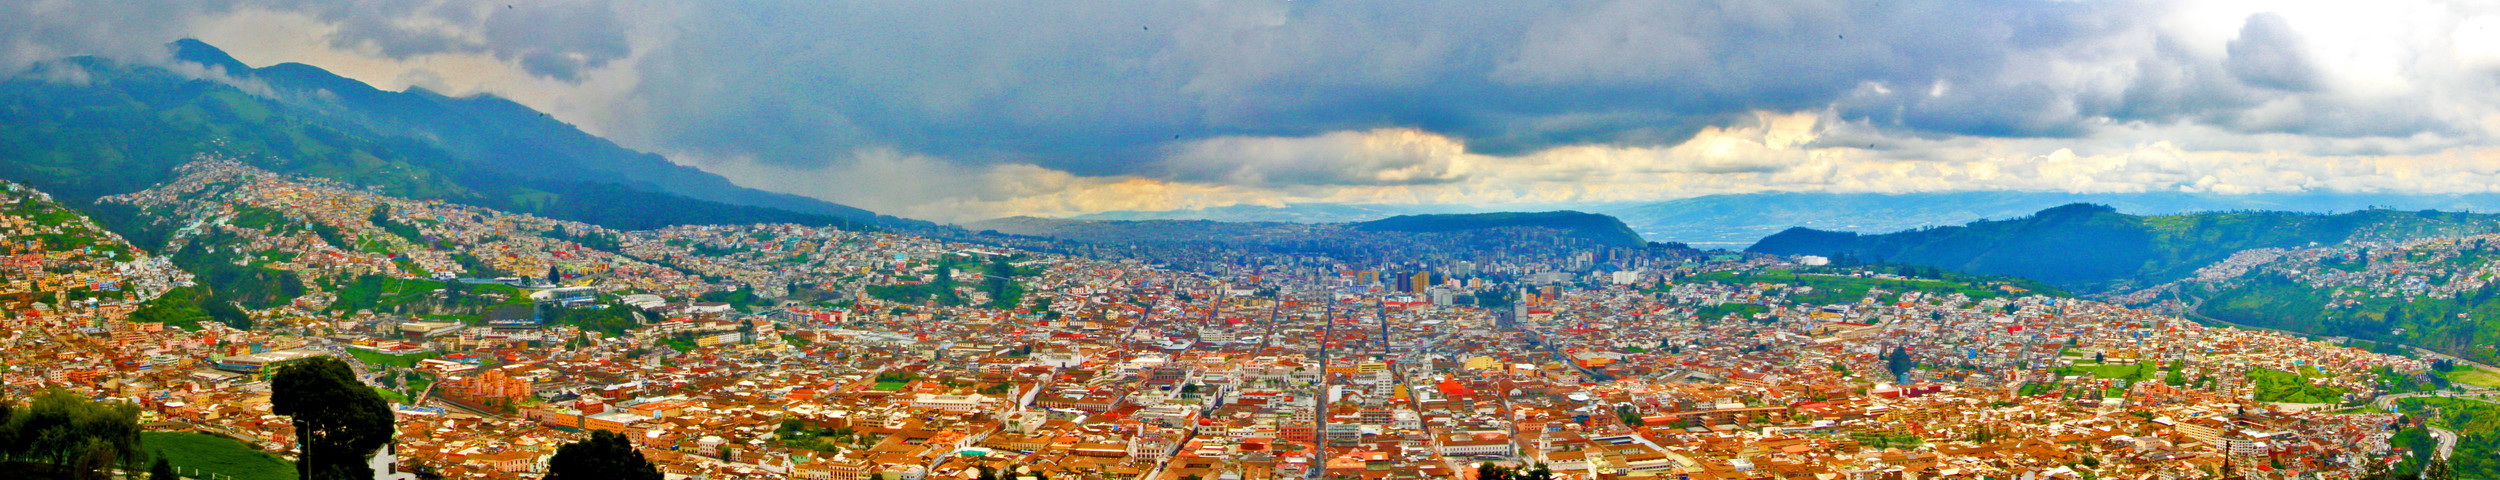 View of Quito from the top of Panecillo